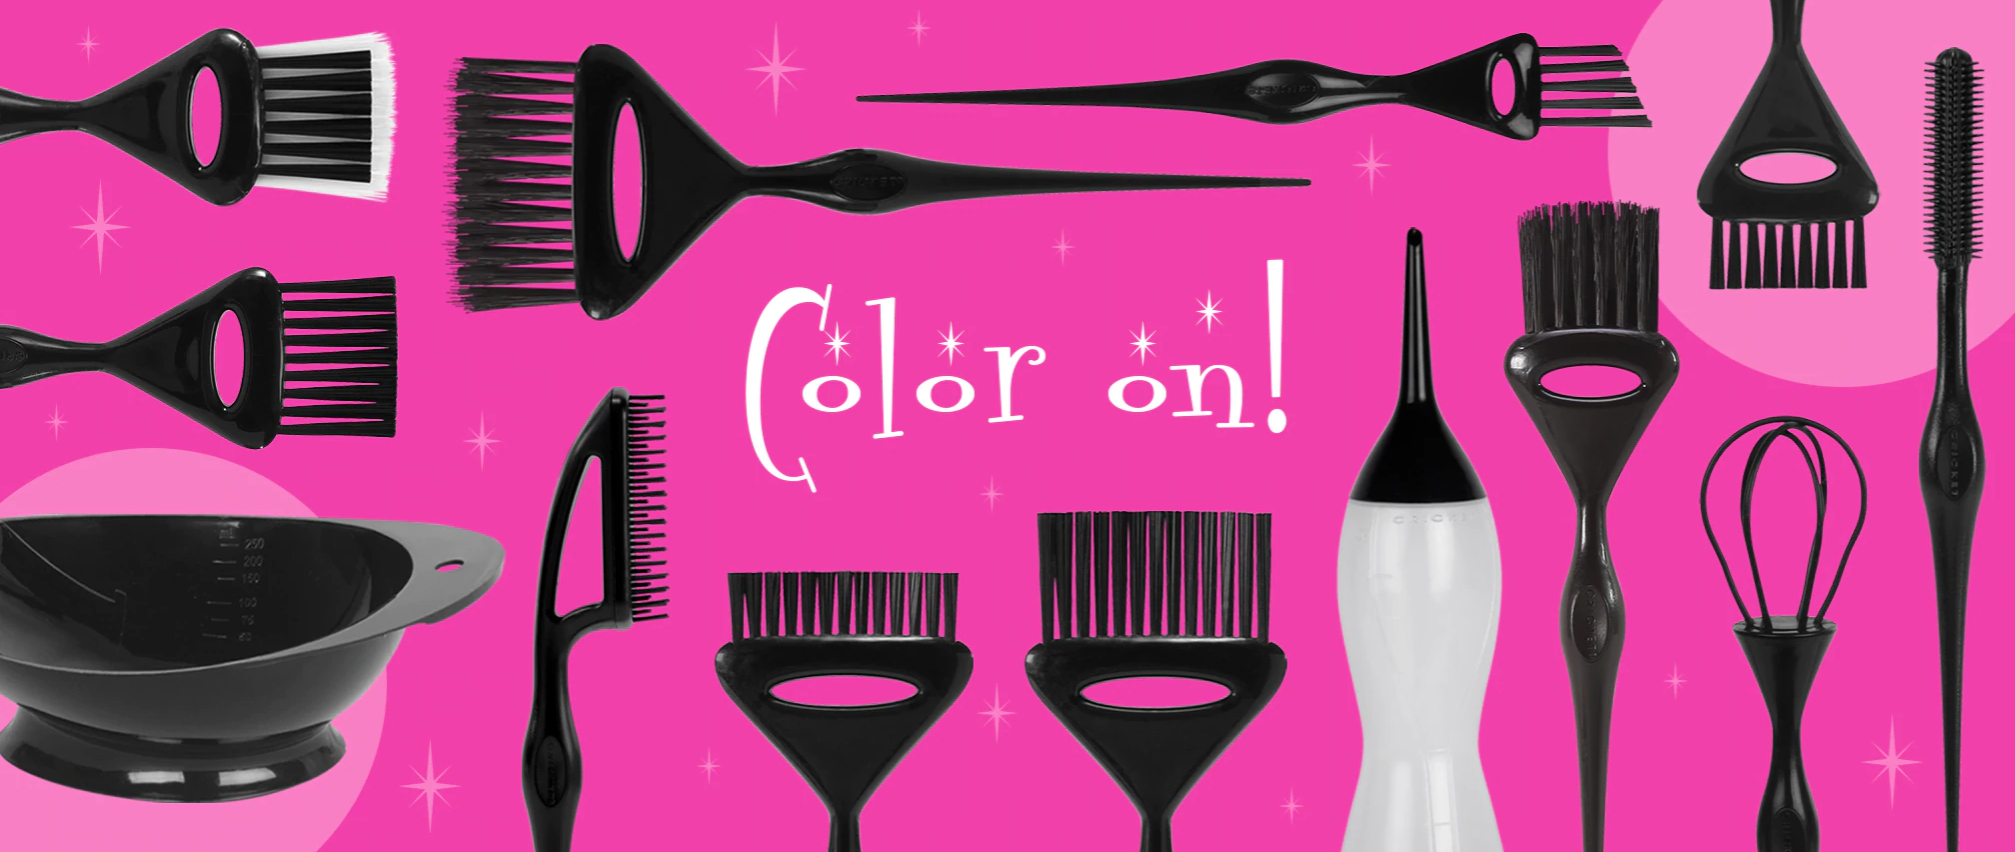 Color Cocktail Hair Coloring Brushes, Wands, Whisks, Bottle and Bowl